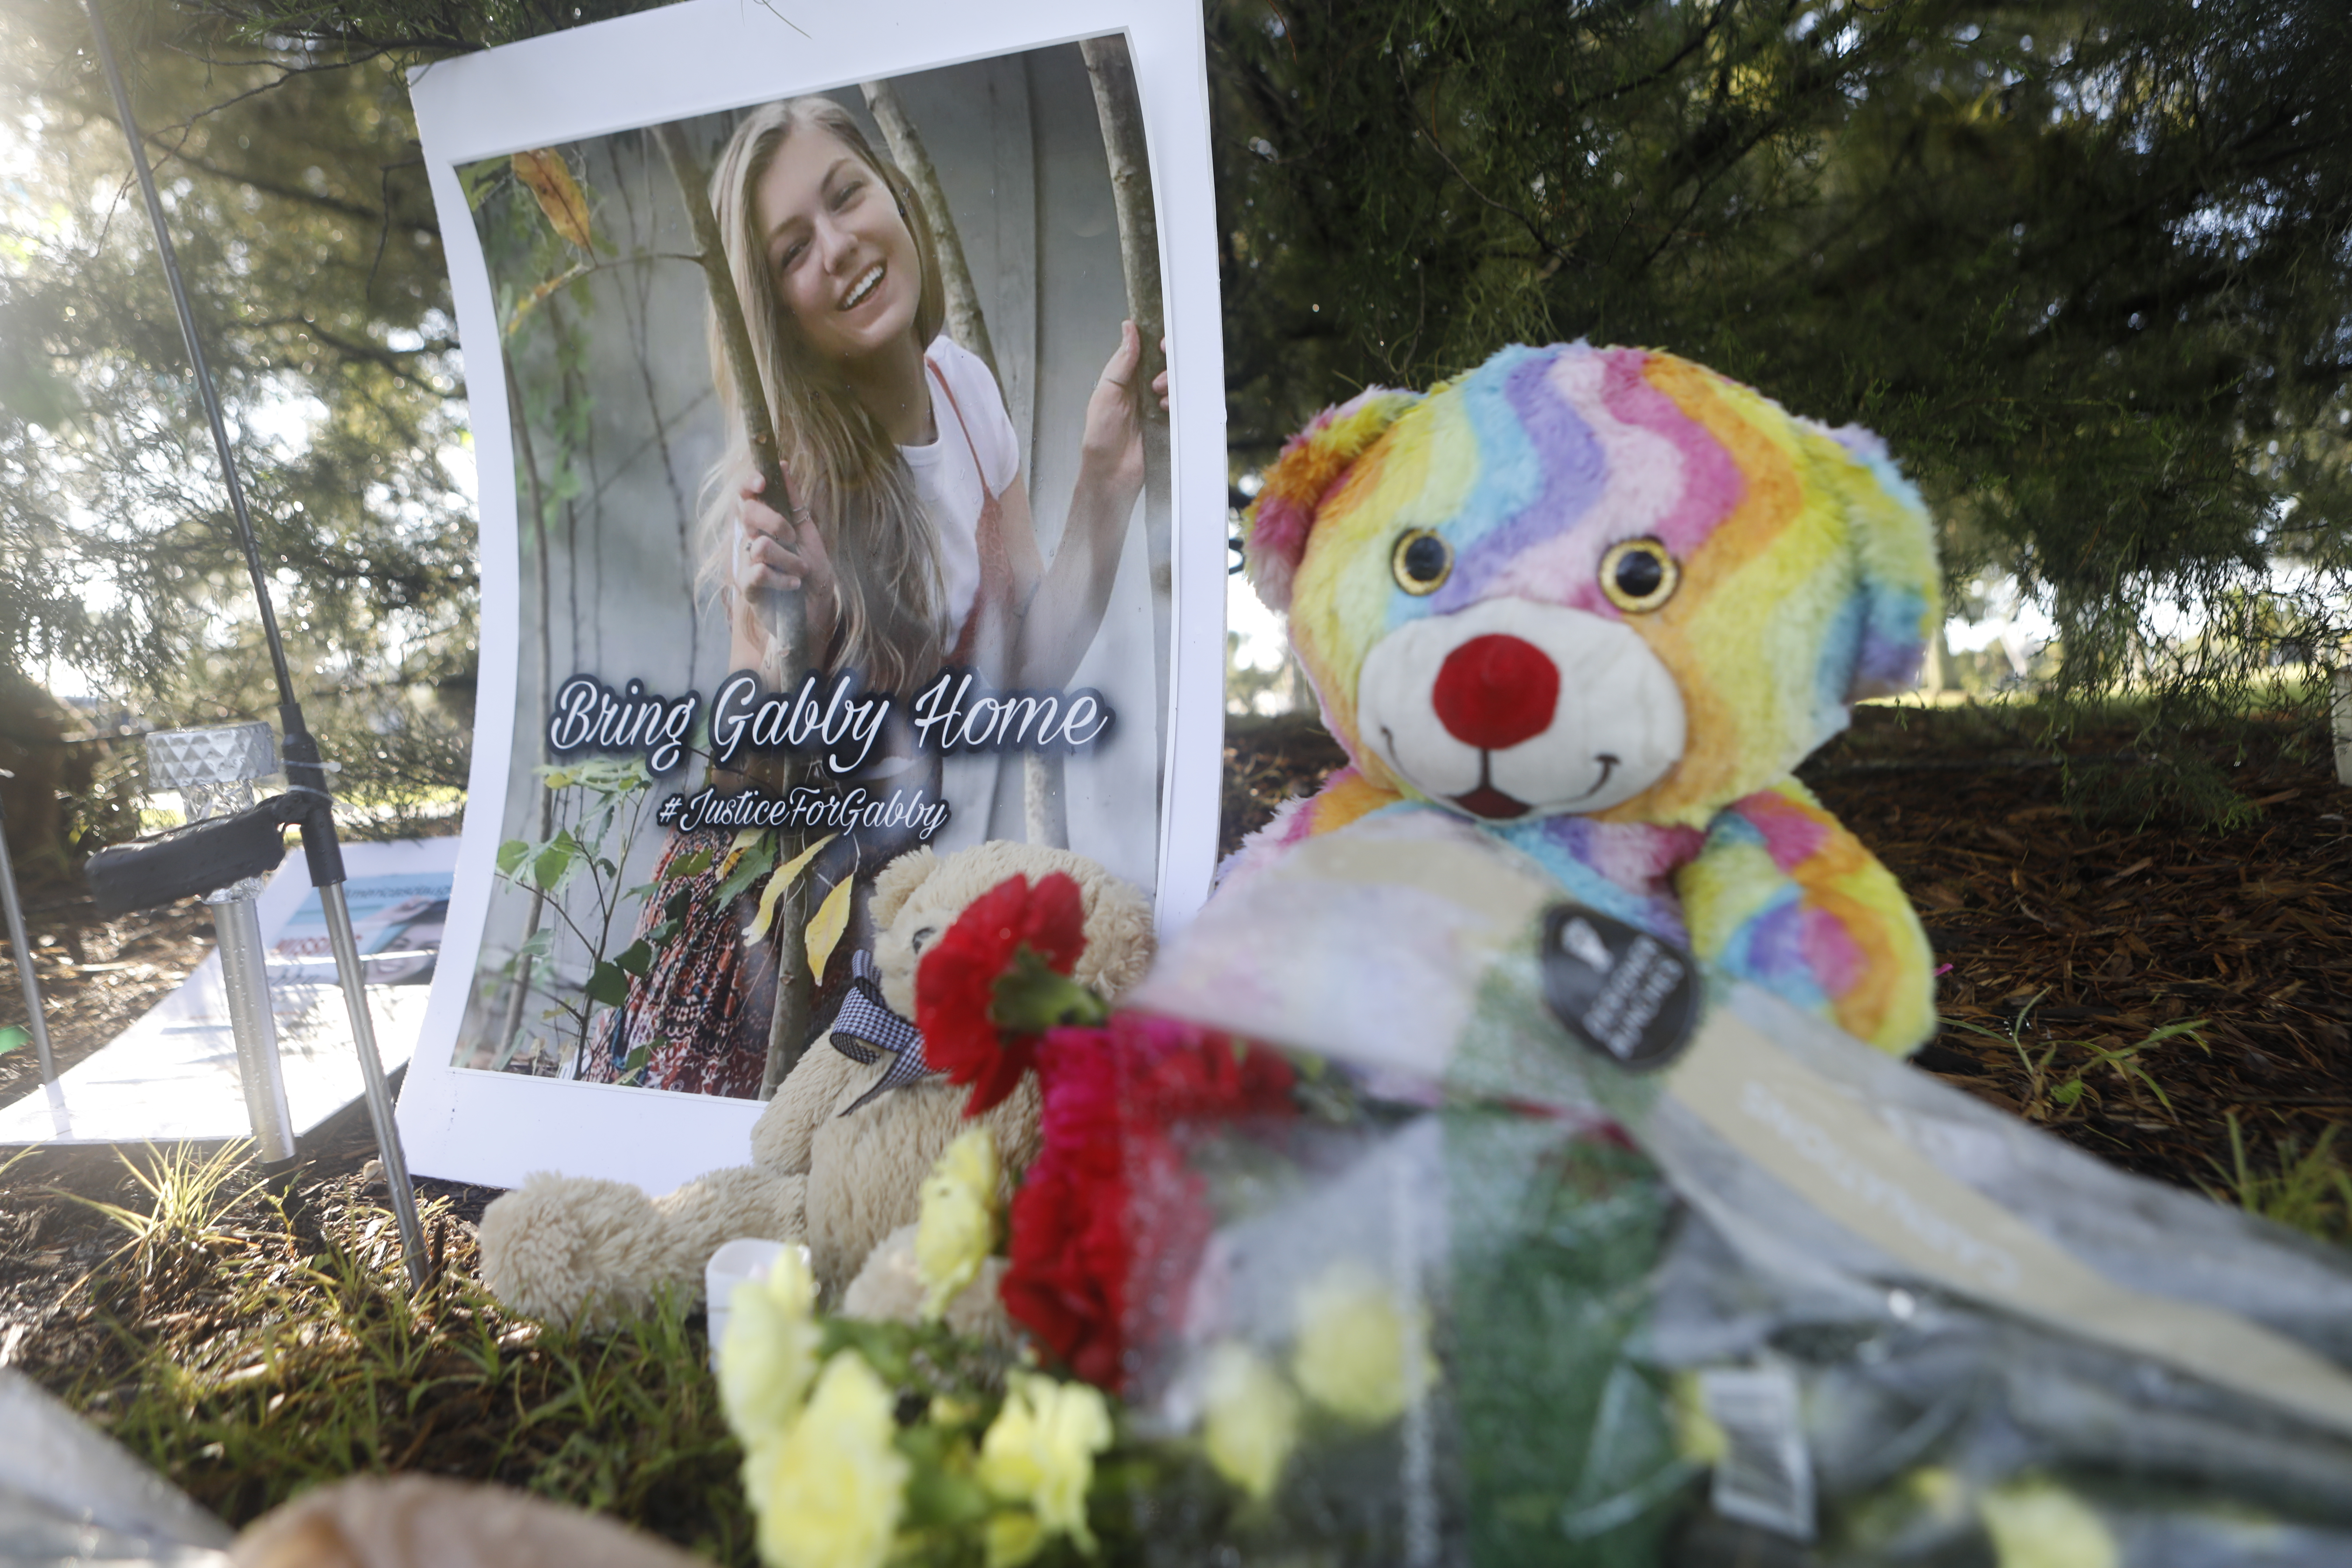 A makeshift memorial dedicated to missing woman Gabby Petito is located near City Hall on September 20, 2021 in North Port, Florida.